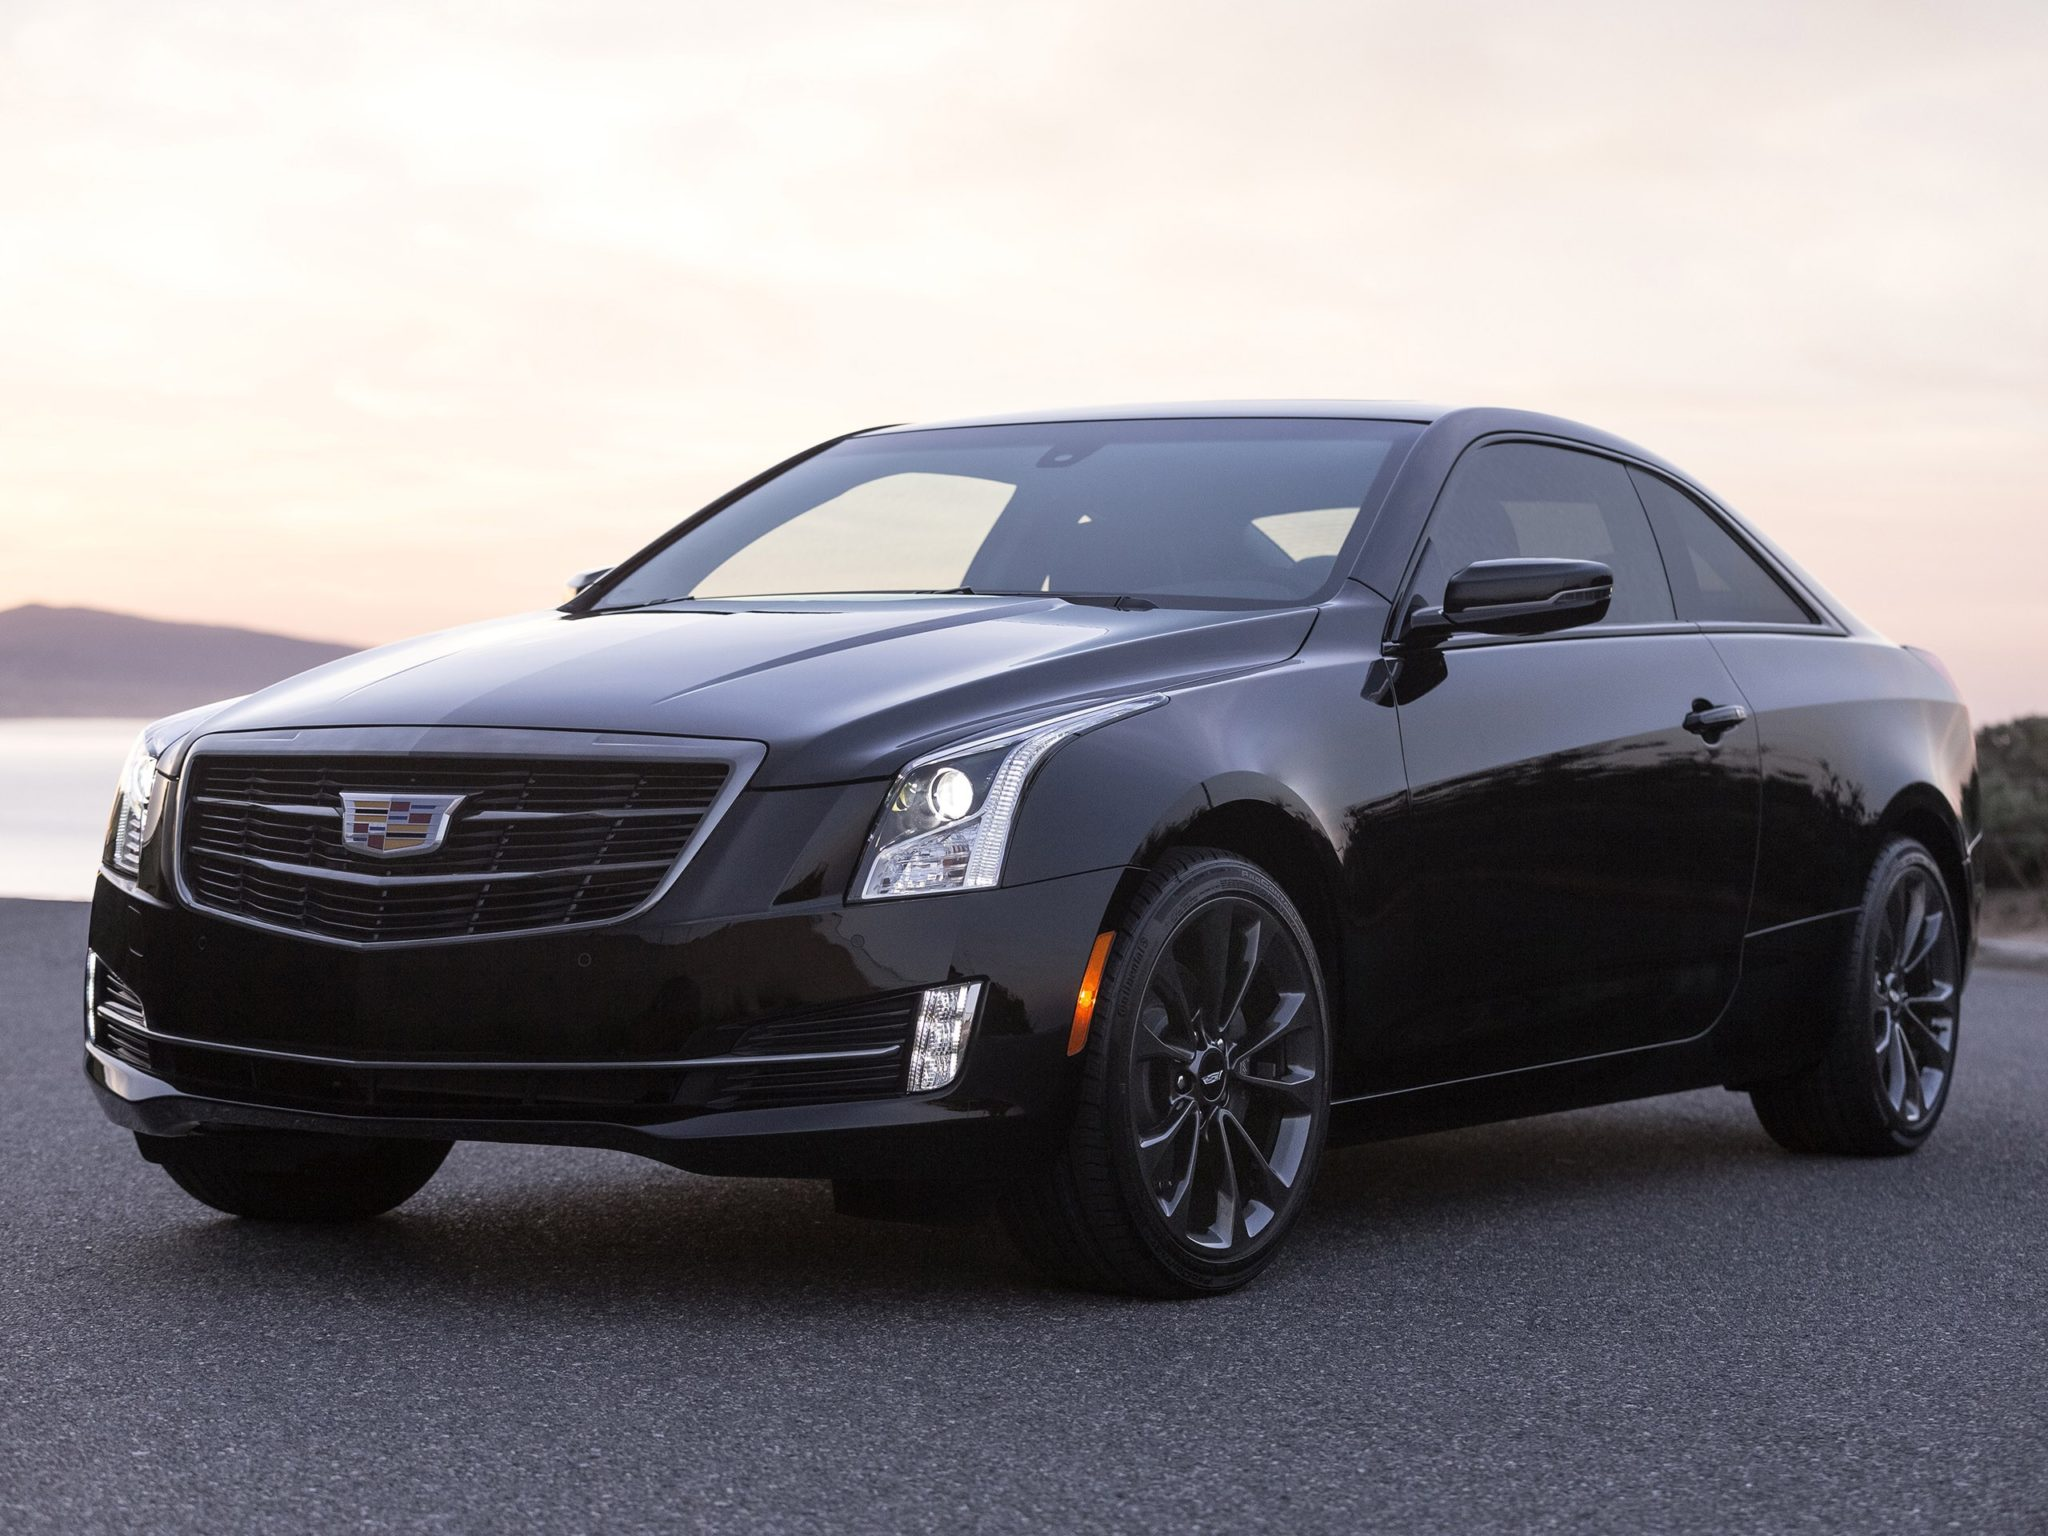 2016 Cadillac ATS Coupe Black Chrome